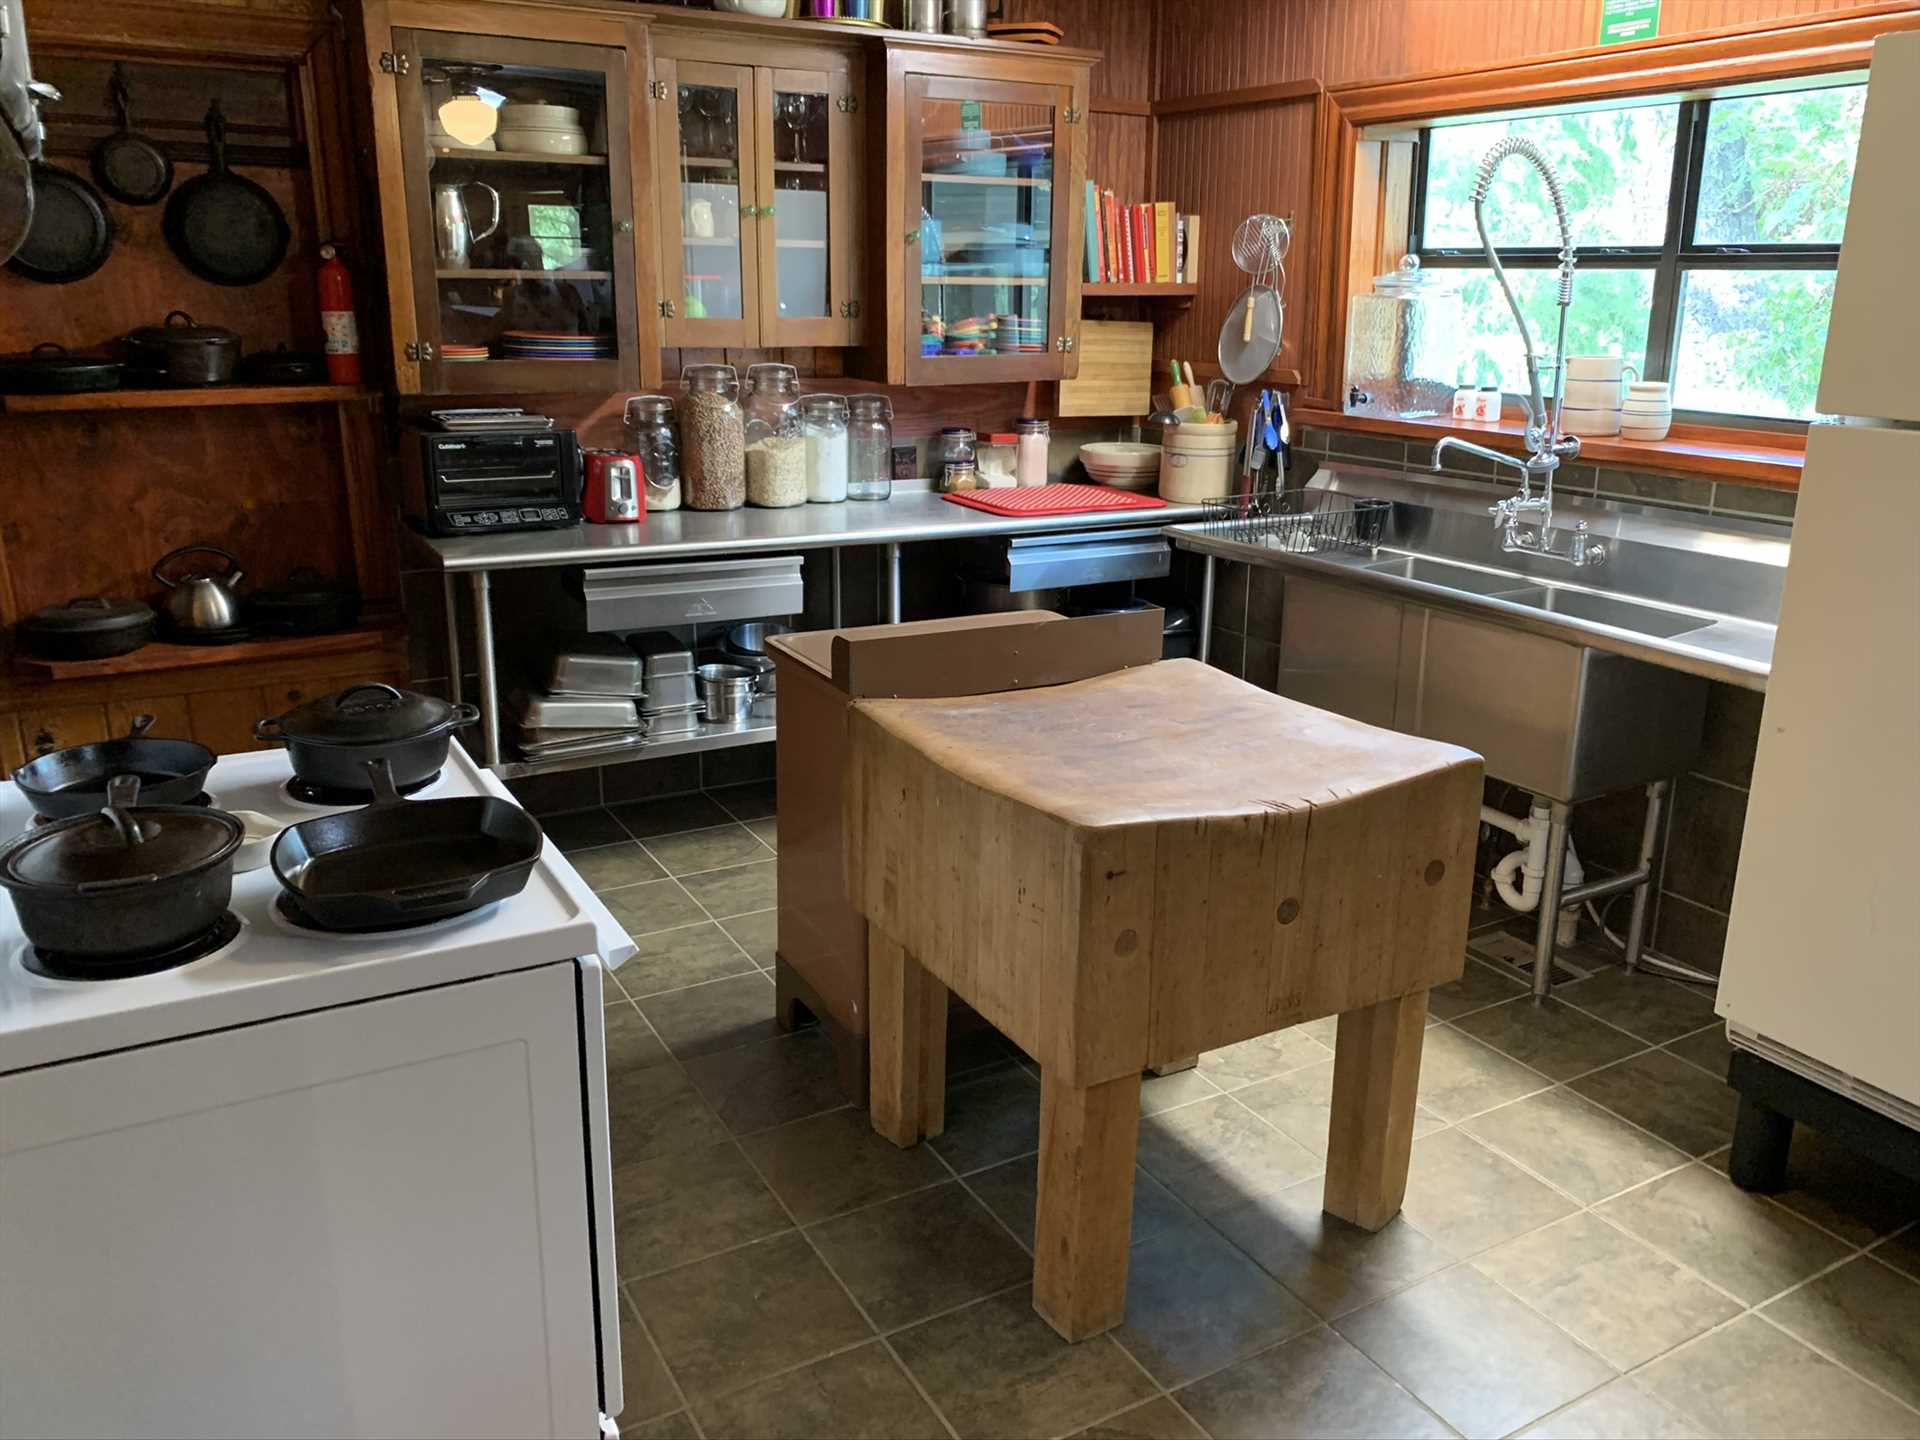 Equipped with modern appliances, a butcher block, and industrial sink, the commercial-grade kitchen is a fantastic place for culinary artists to strut their stuff!